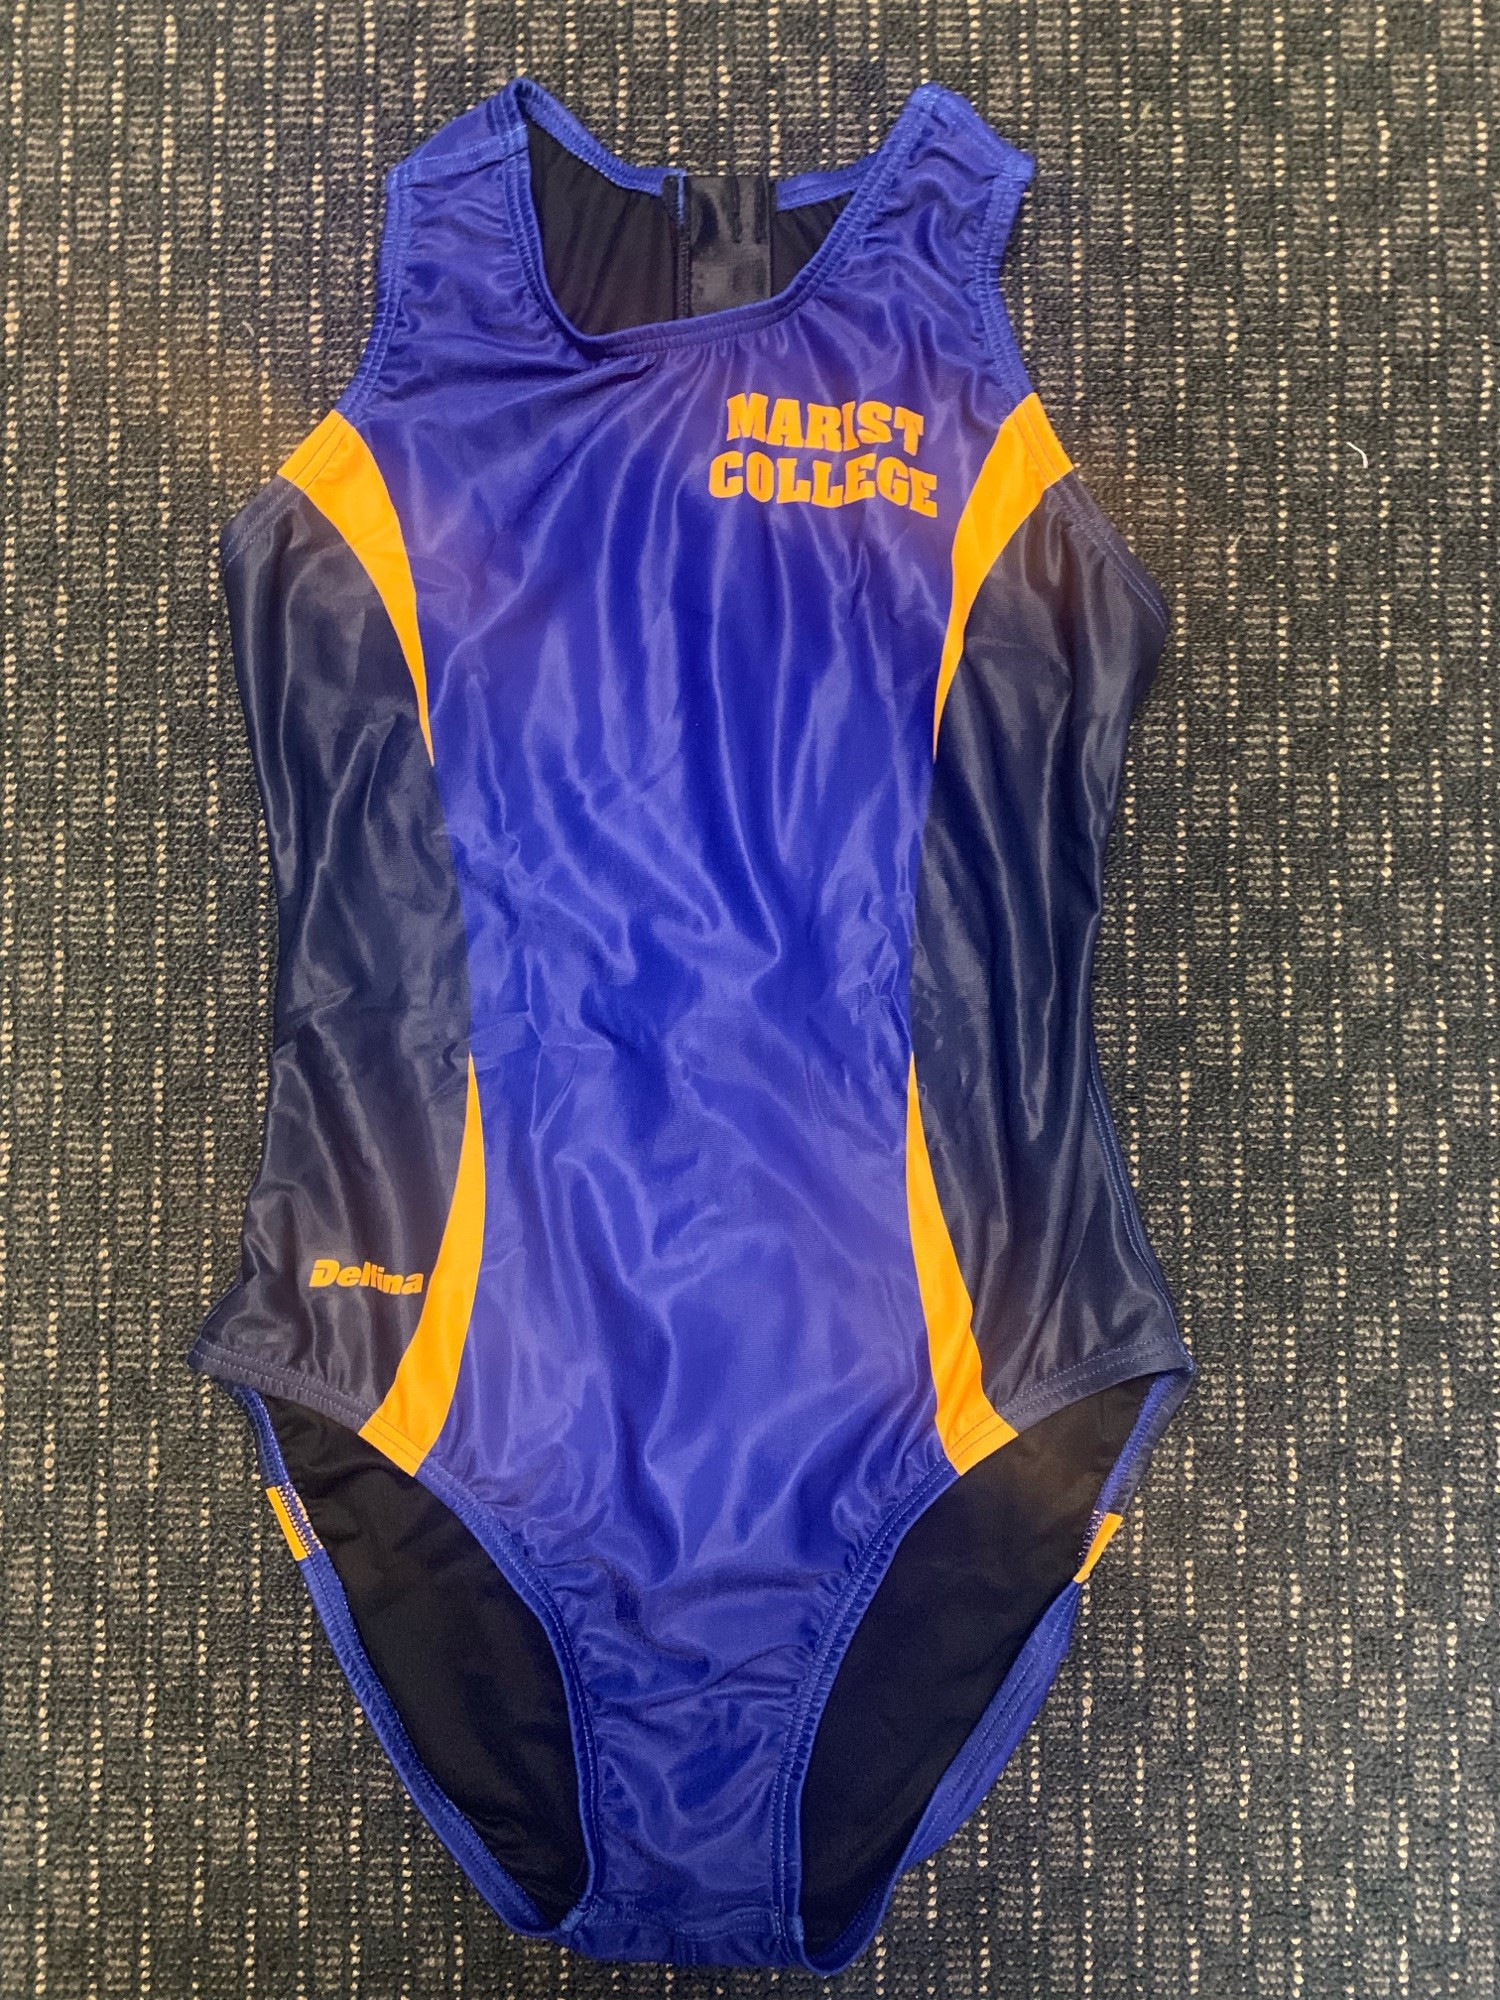 Marist Water Polo Togs